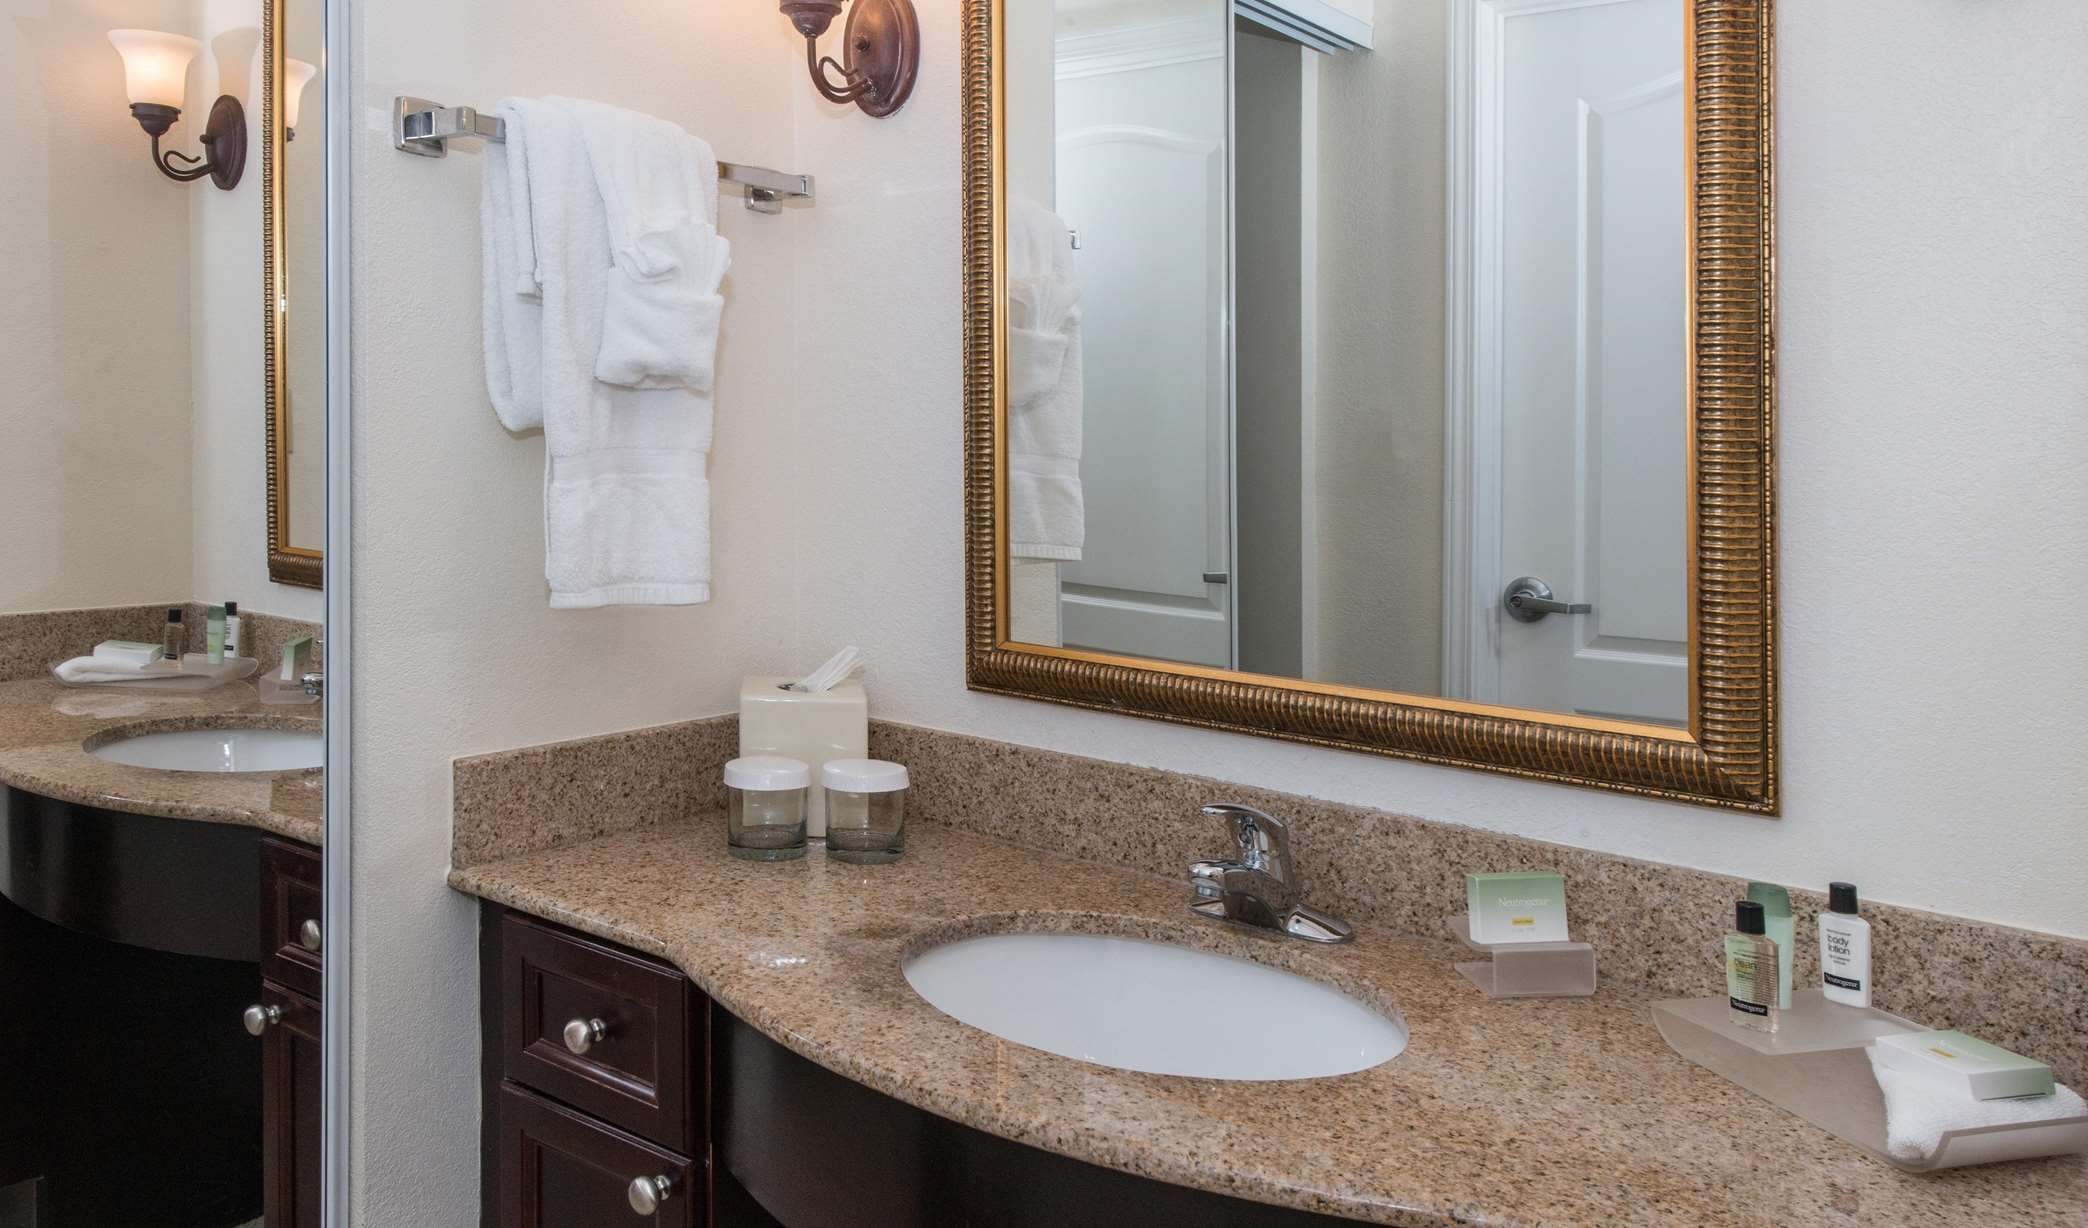 Homewood Suites by Hilton Montgomery image 22